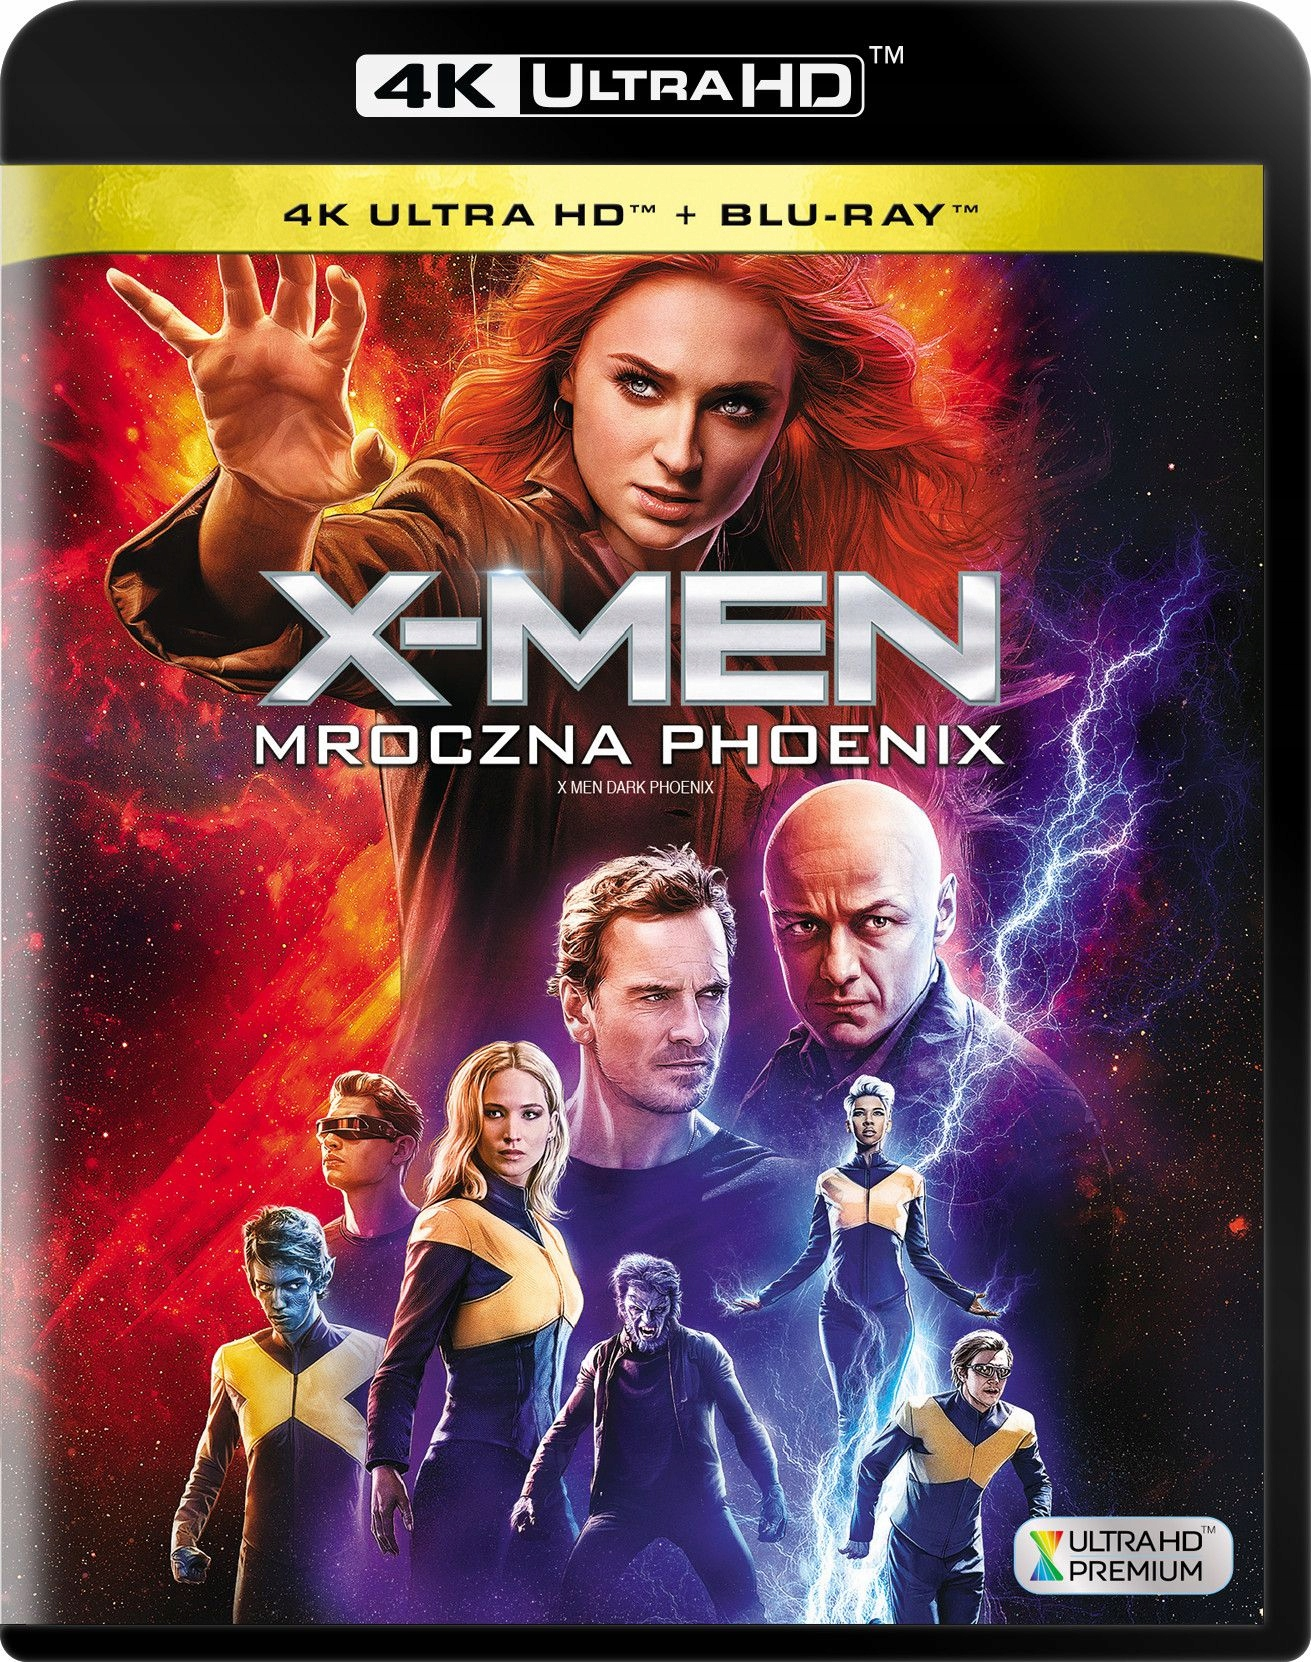 X-Men: Mroczna Phoenix - Dark Phoenix (2019) - Film 4K Ultra-HD